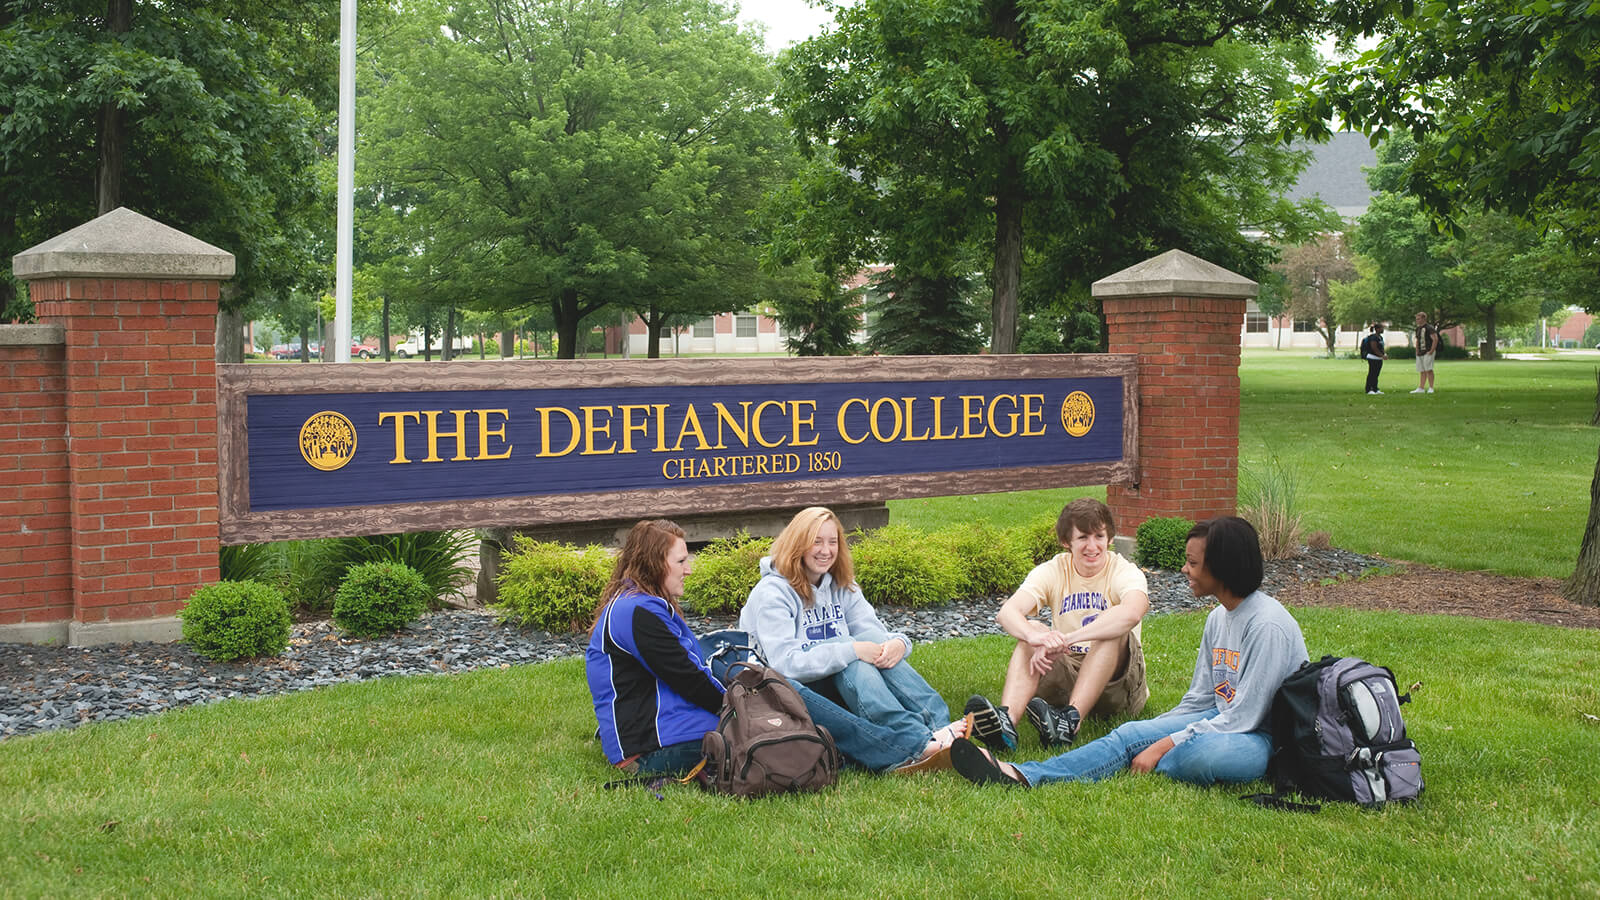 Defiance College